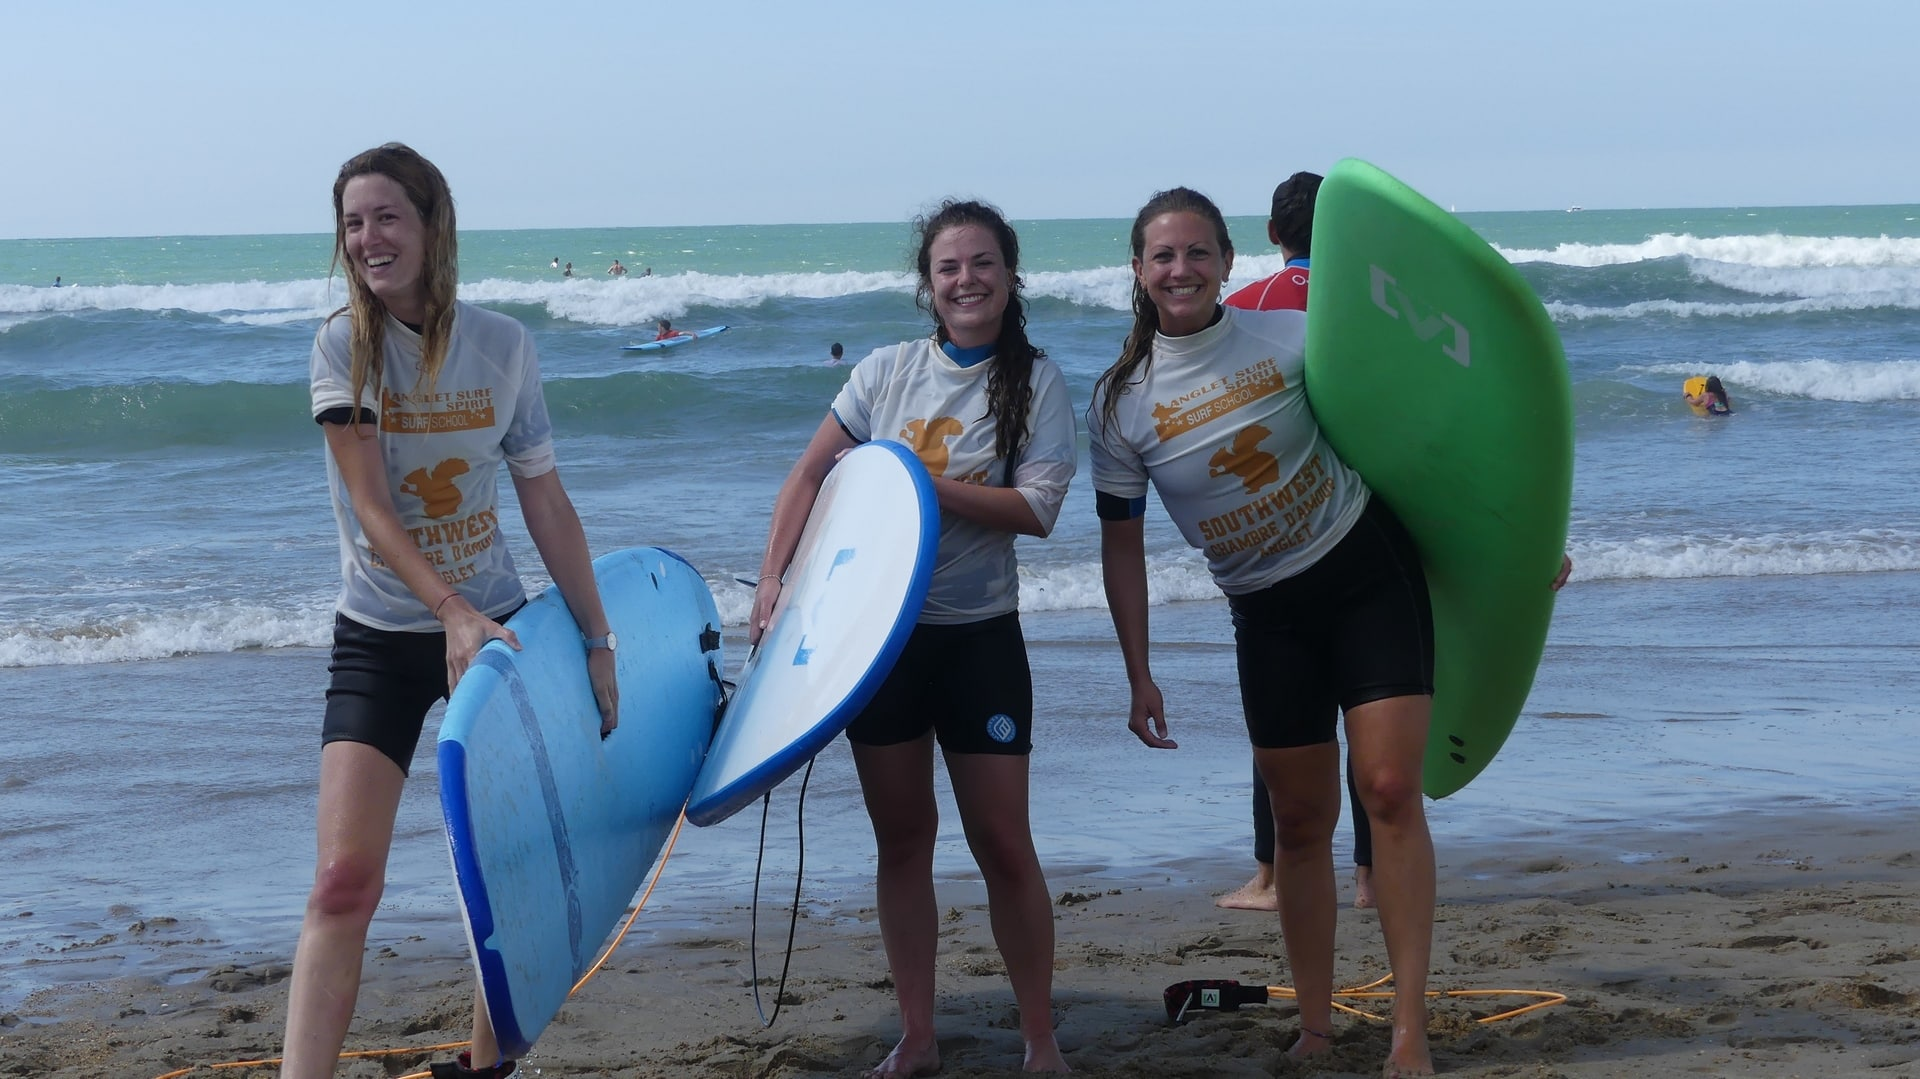 3 girls with surfboards in front of the ocean in Anglet